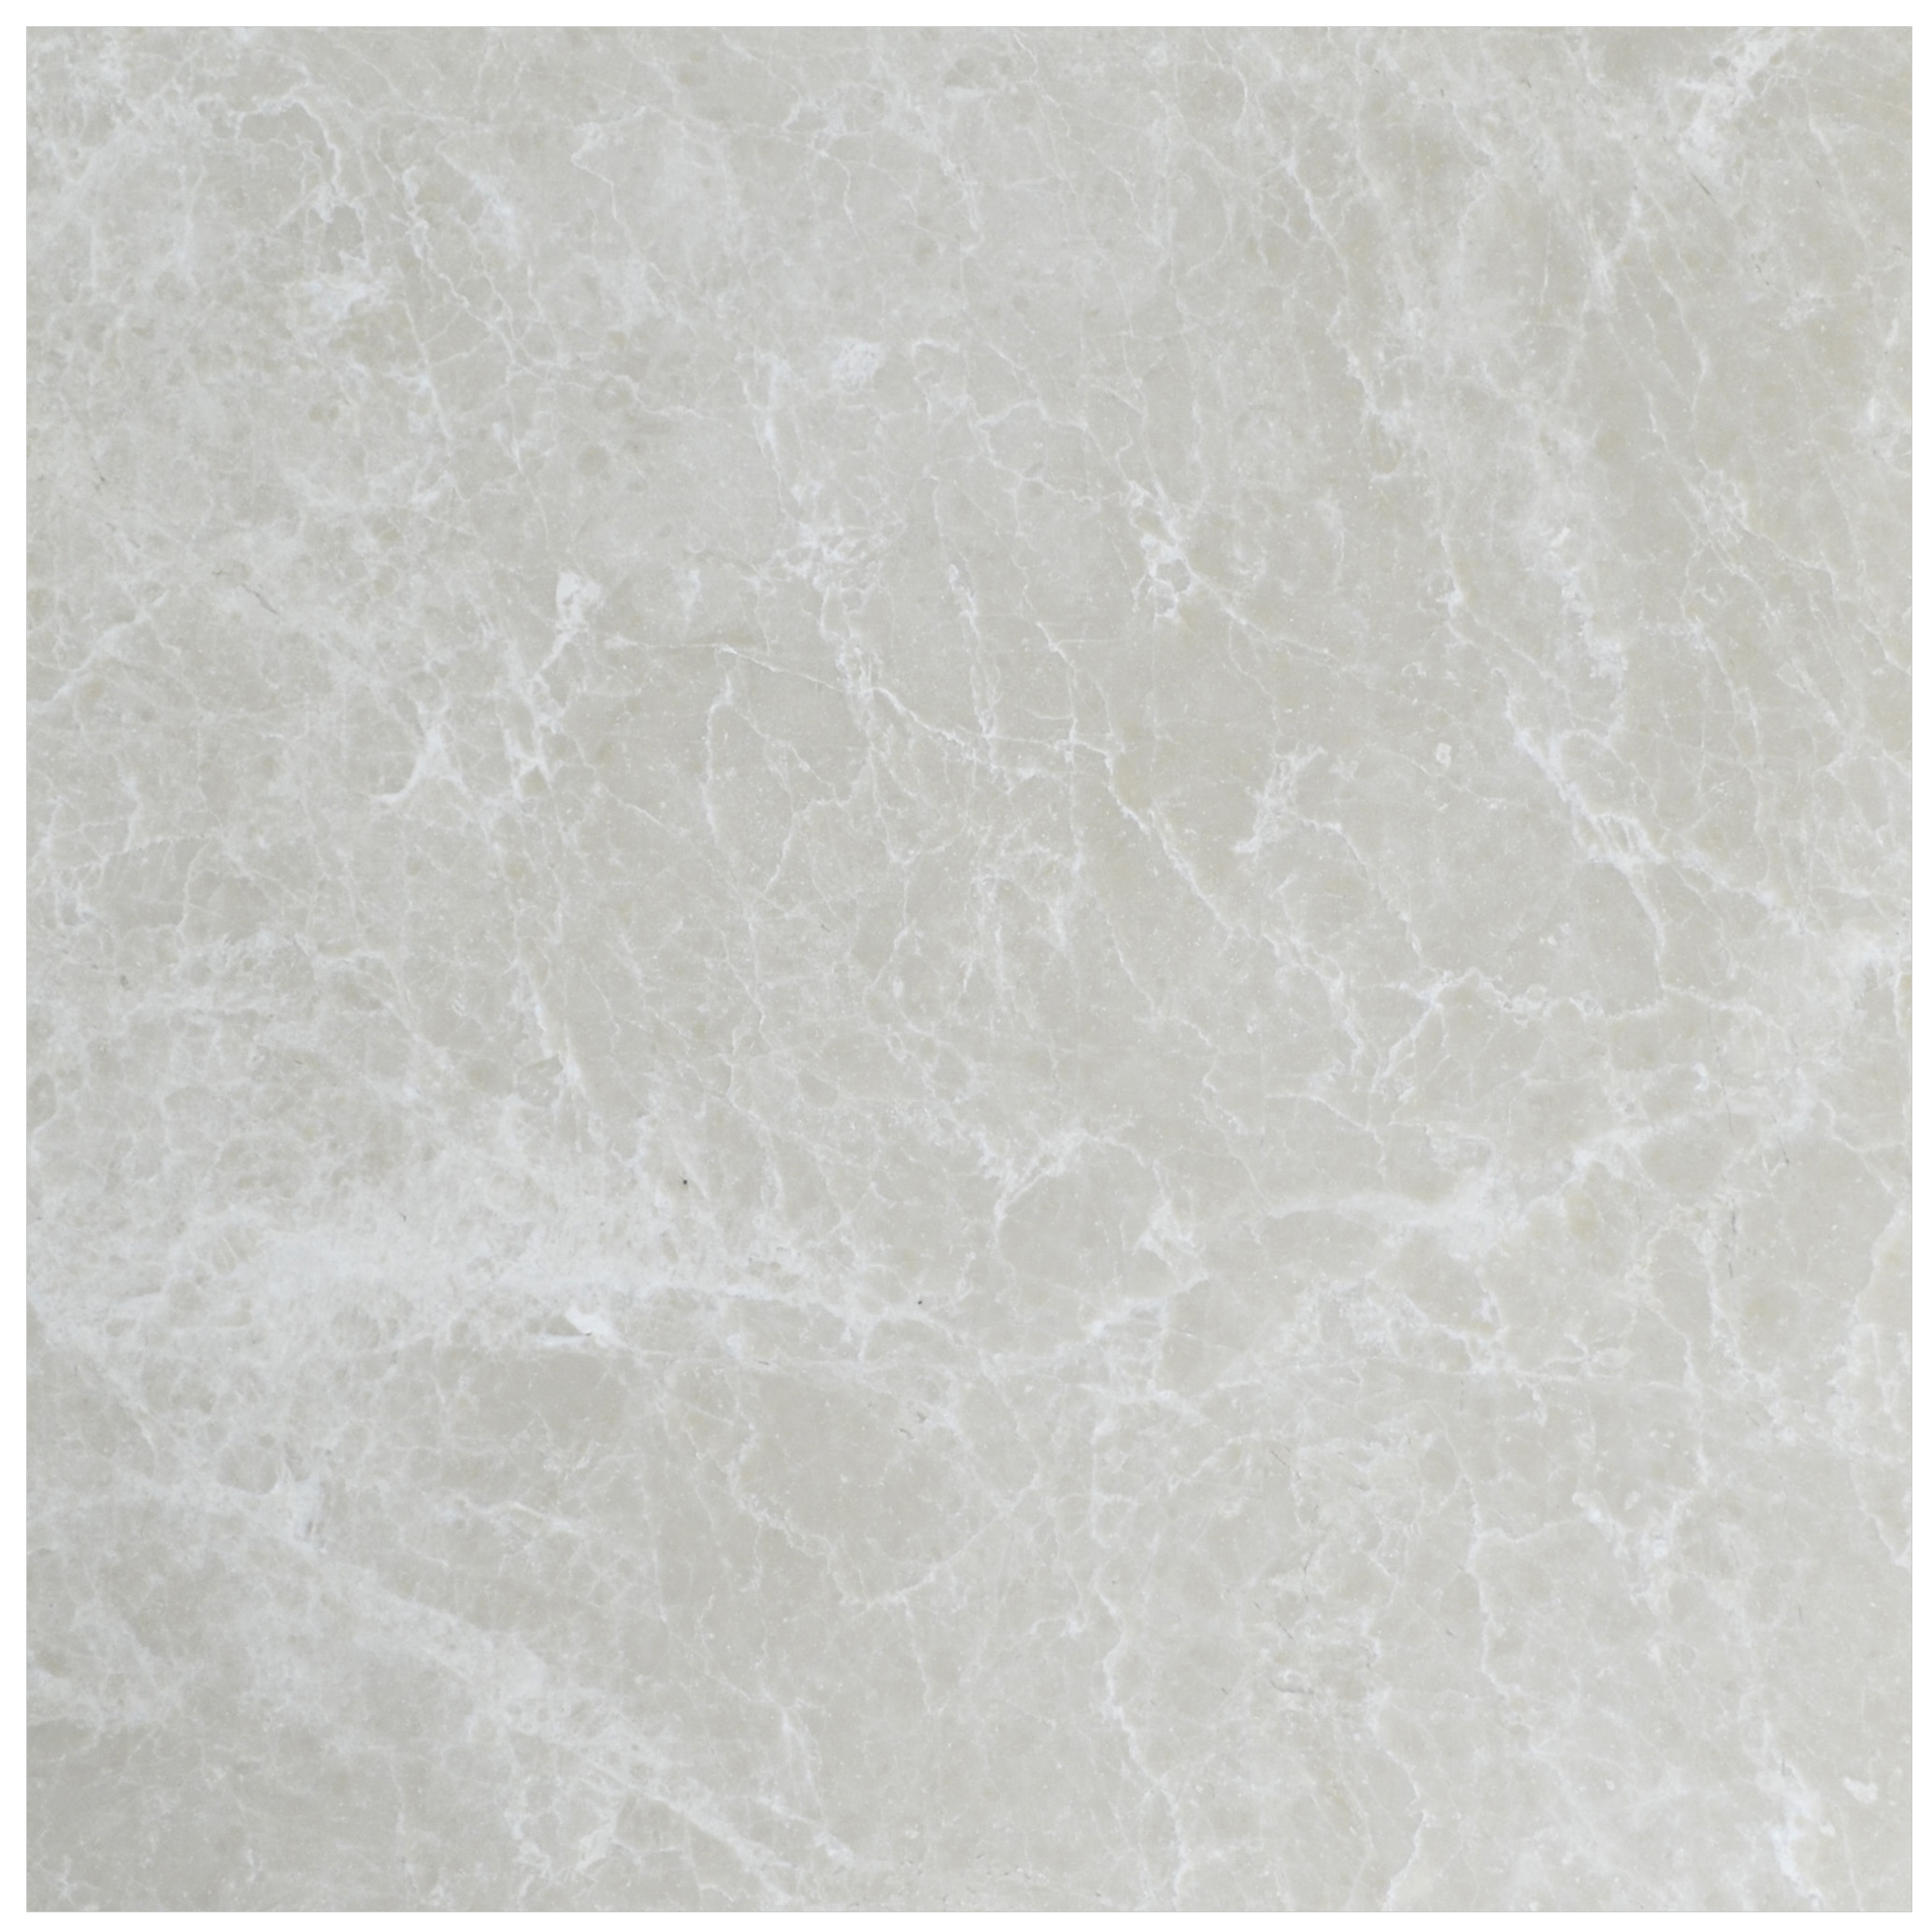 Botticino Antique Marble Tiles 18x18 2